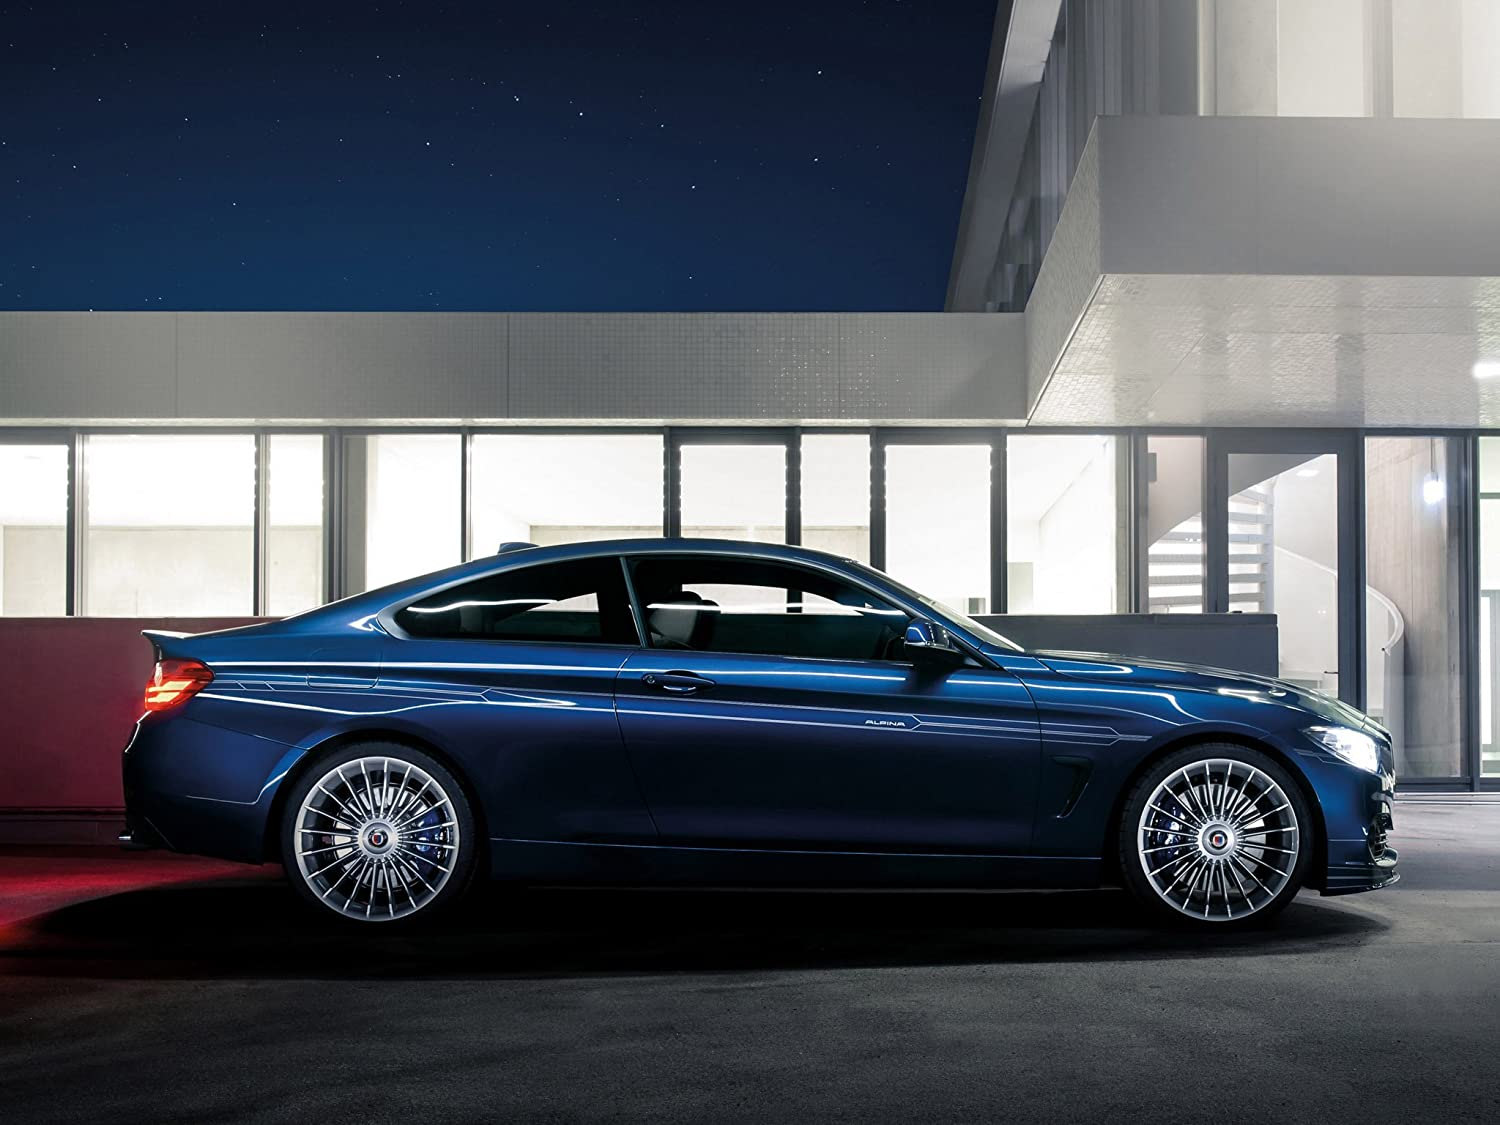 Amazon.com: Alpina B4 Bi-Turbo Coupé based on BMW 435i F32 Japan Version (2013) Car Art Poster Print on 10 mil Archival Satin Paper Blue Side Static View ...